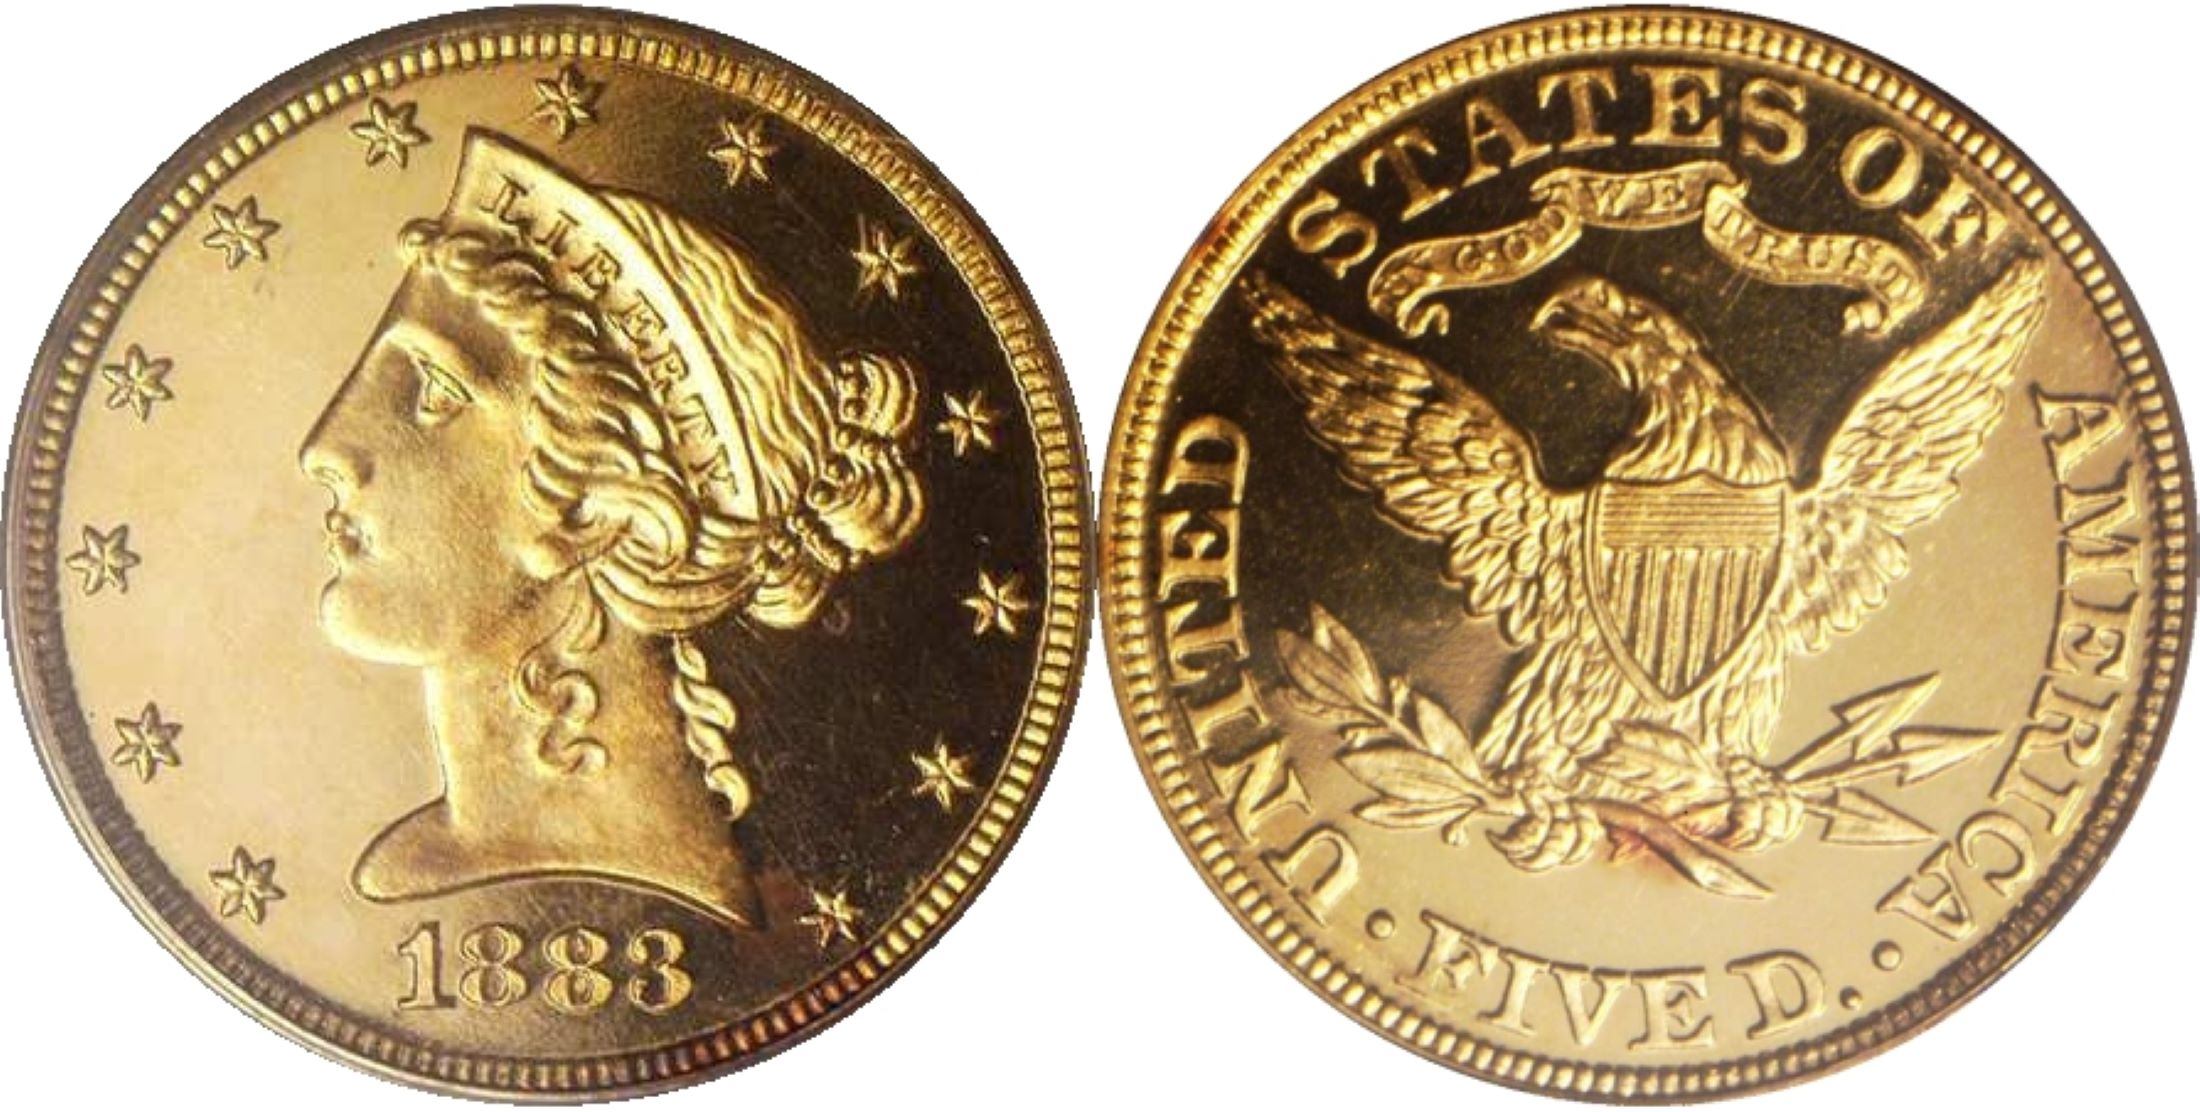 "PCGS PR65<BR>Ex Eliasberg<BR>Image courtesy of <a href=""http://www.ha.com"" target=""_blank"">Heritage Numismatic Auctions</a>"